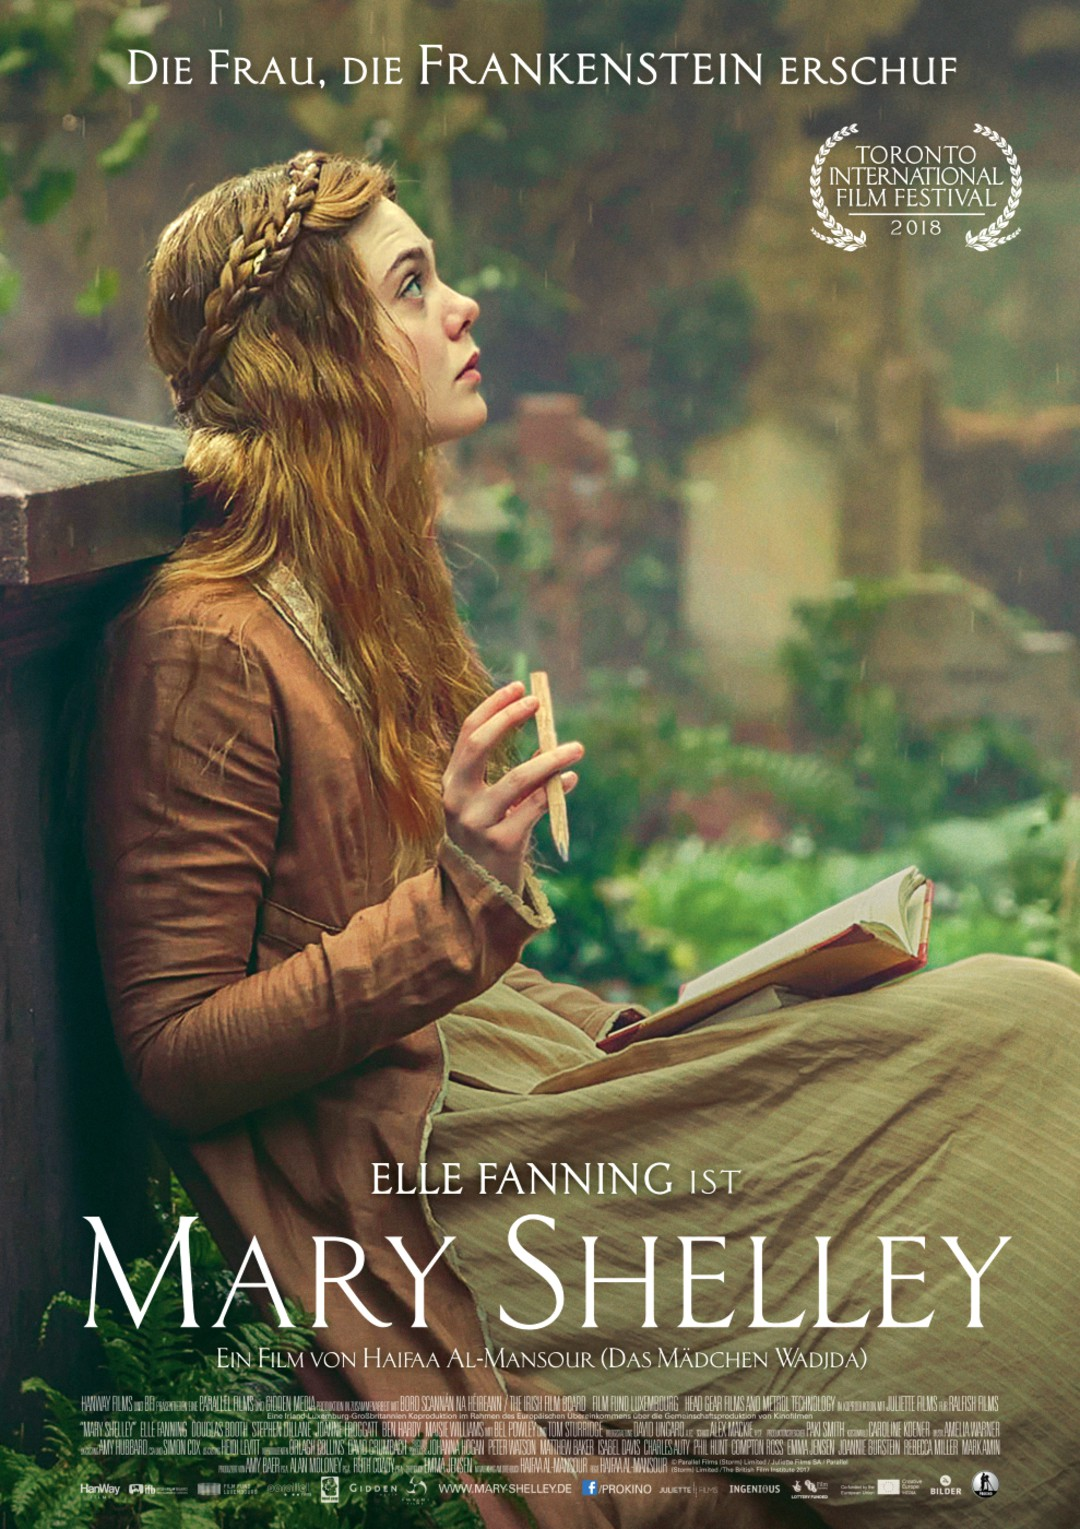 Mary Shelley Trailer - Bild 1 von 10